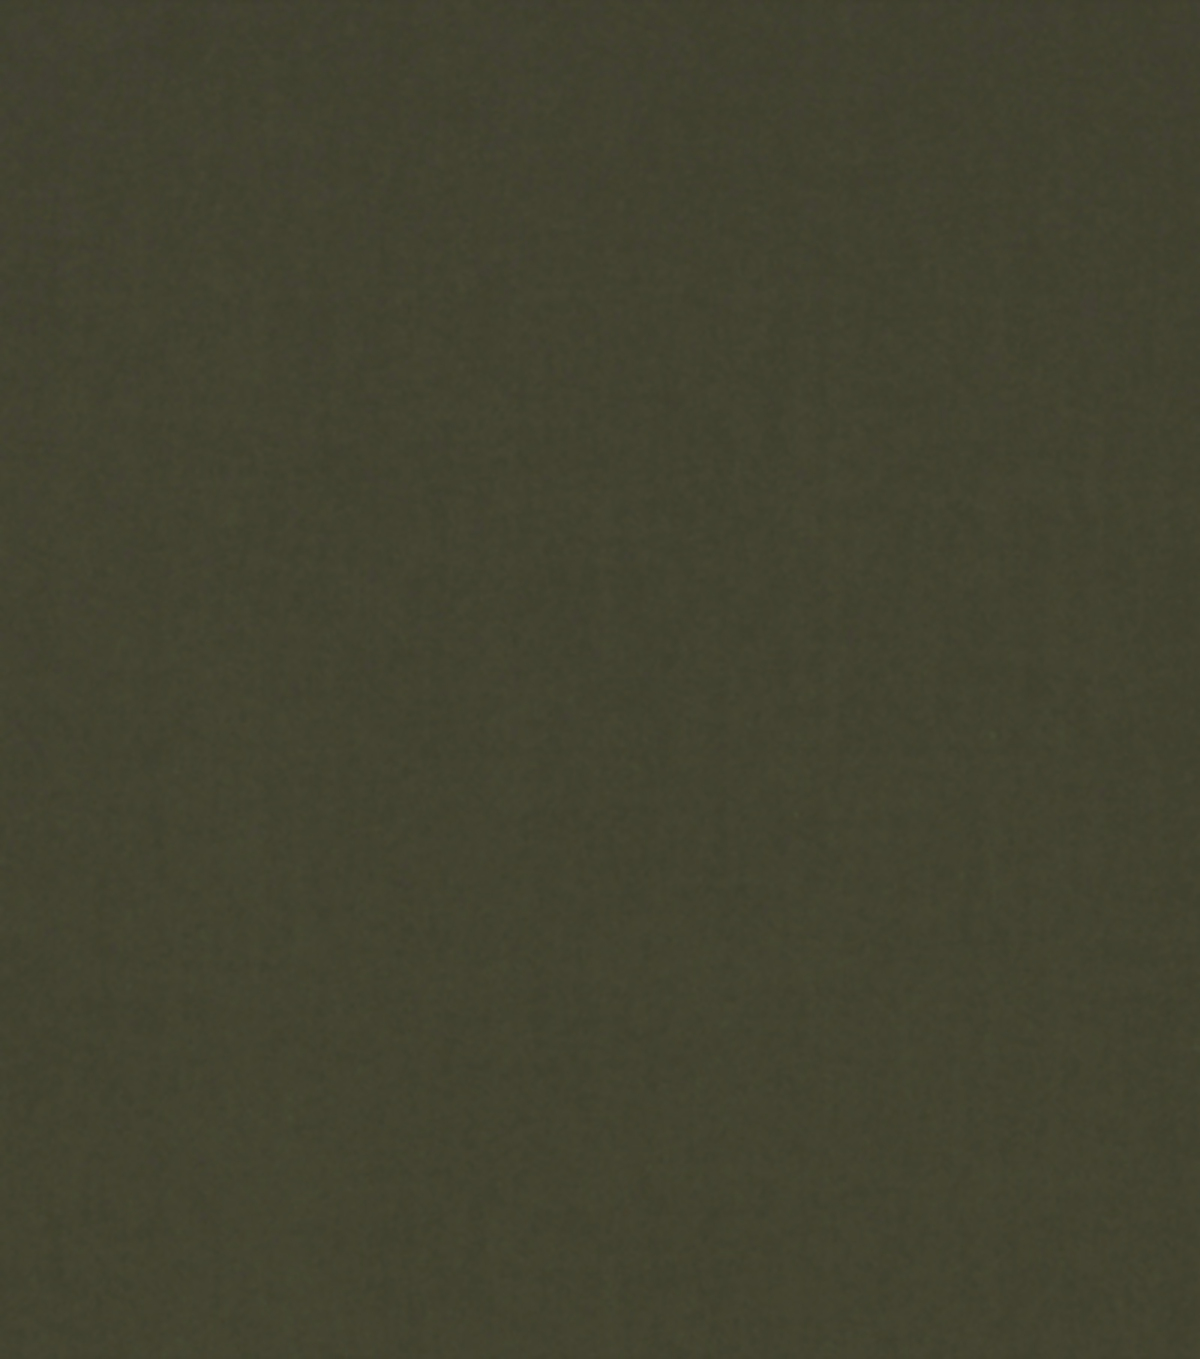 Home Decor 8\u0022x8\u0022 Fabric Swatch-Covington Spinnaker 945 Gunmetal